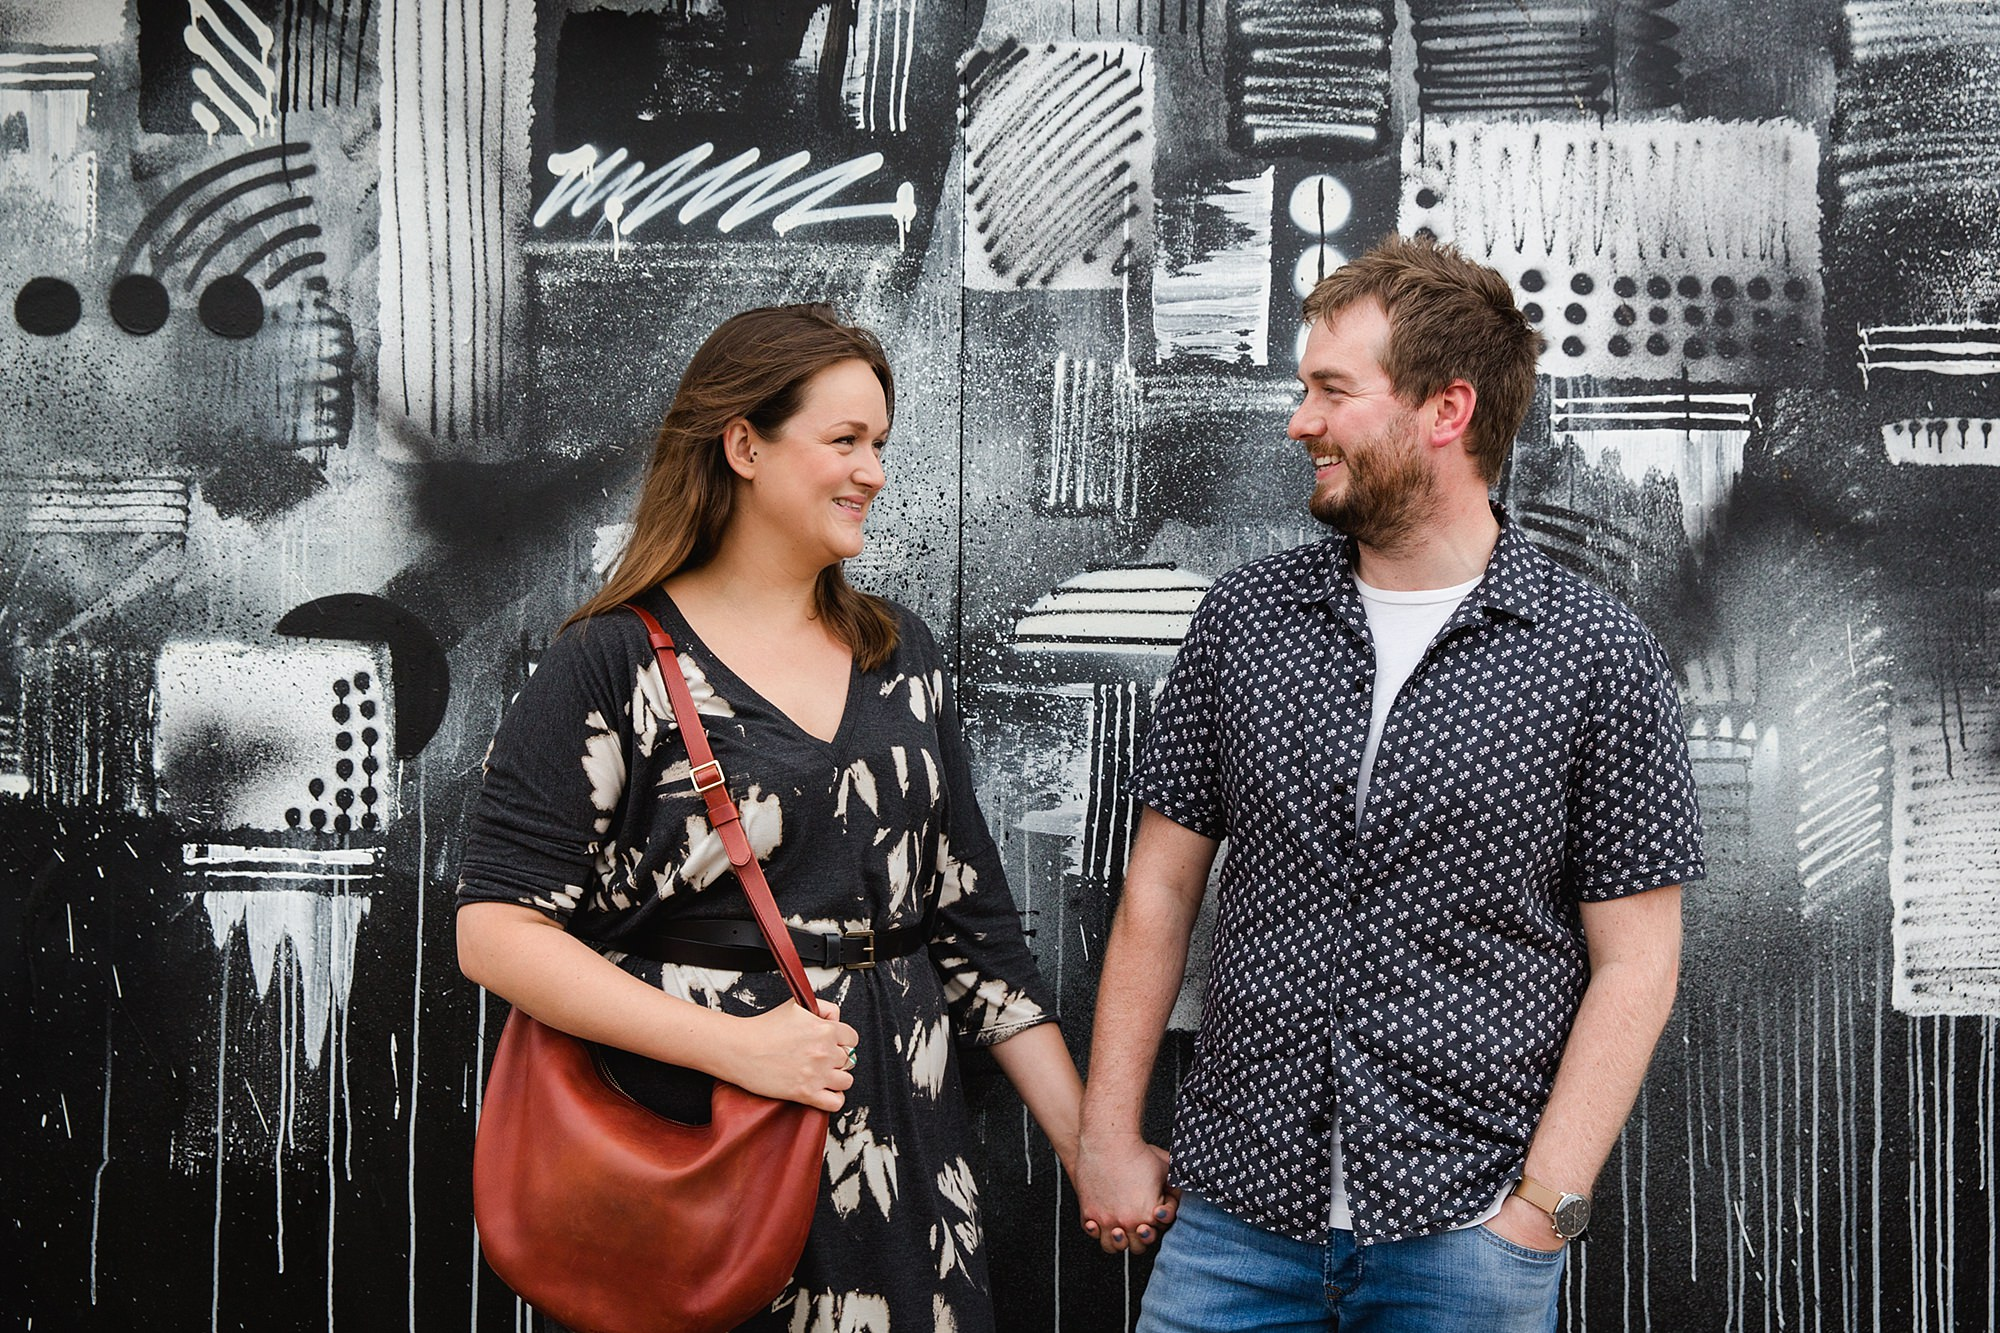 Croydon engagement photography - portrait of couple in front of graffiti